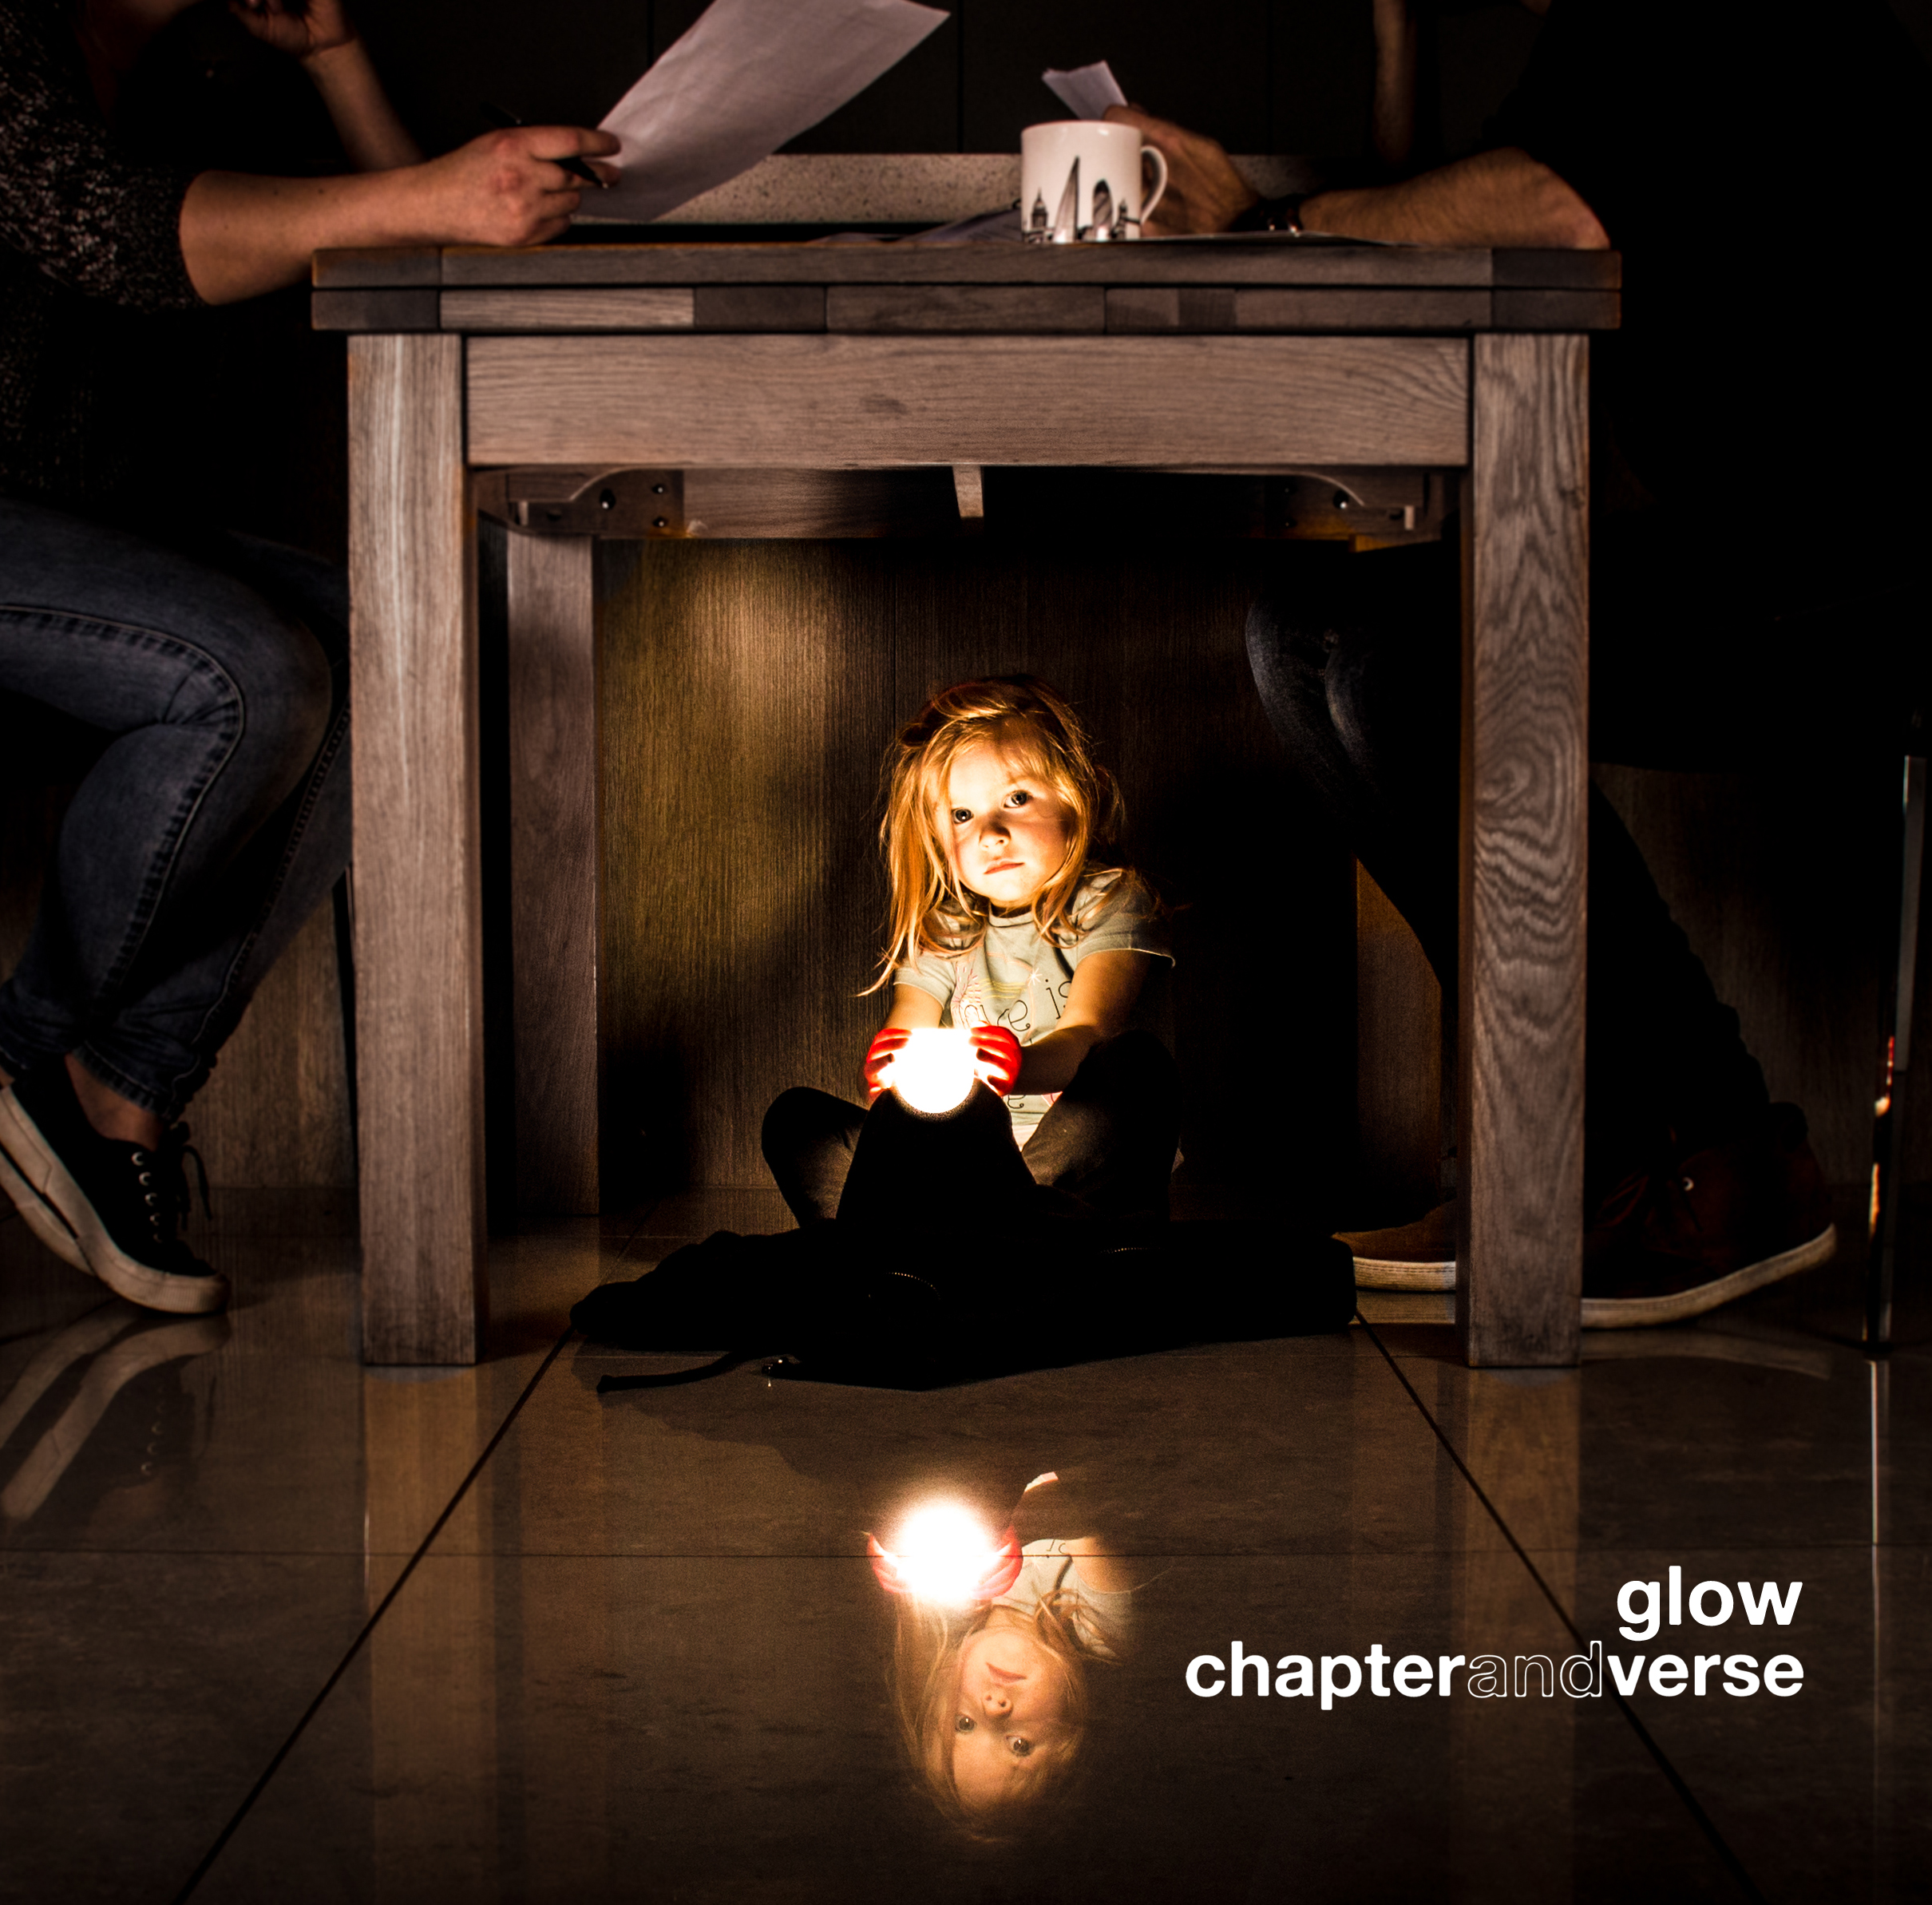 Glow  EP tracklisting:  1. The Casket 2. Magazines 3. Eleven Hours in Real Time 4. A Devil in Blue 5. Ink